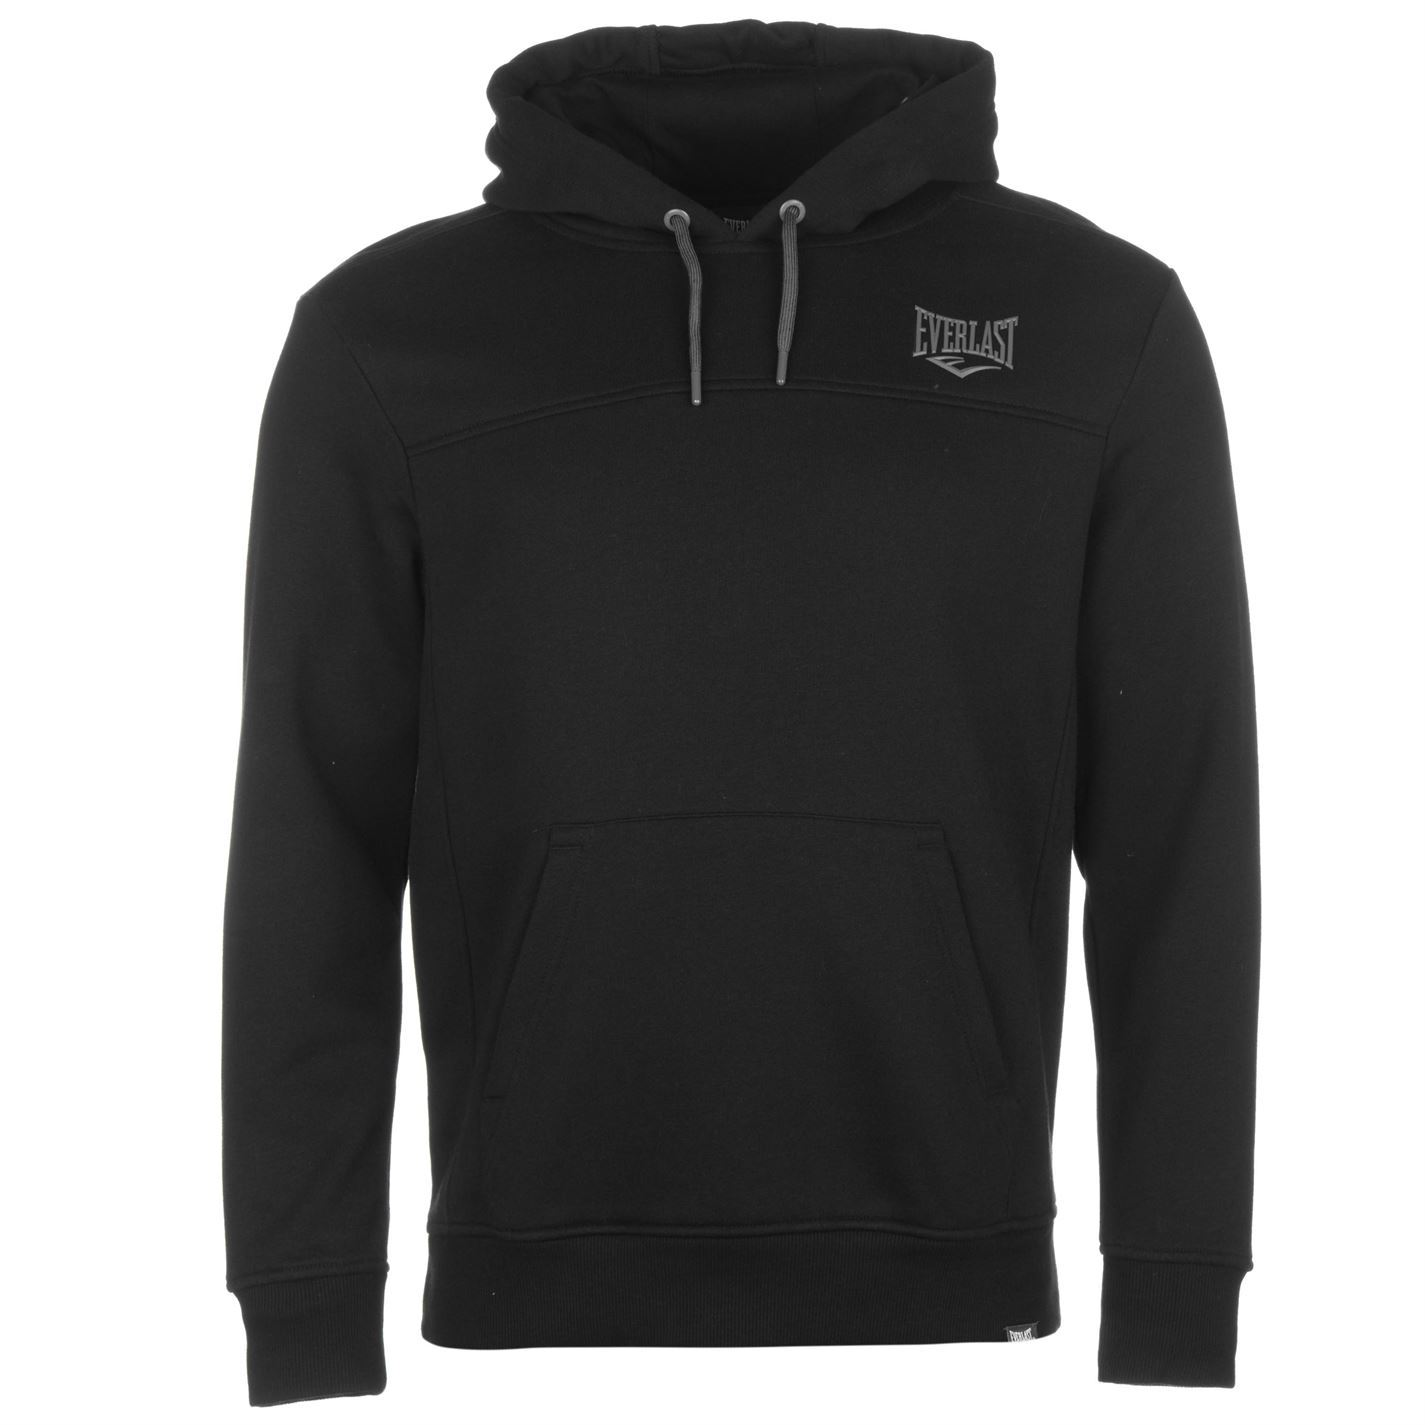 Everlast-Logo-Pullover-Hoody-Mens-OTH-Hoodie-Hooded-Top-Sweatshirt-Sweater thumbnail 5